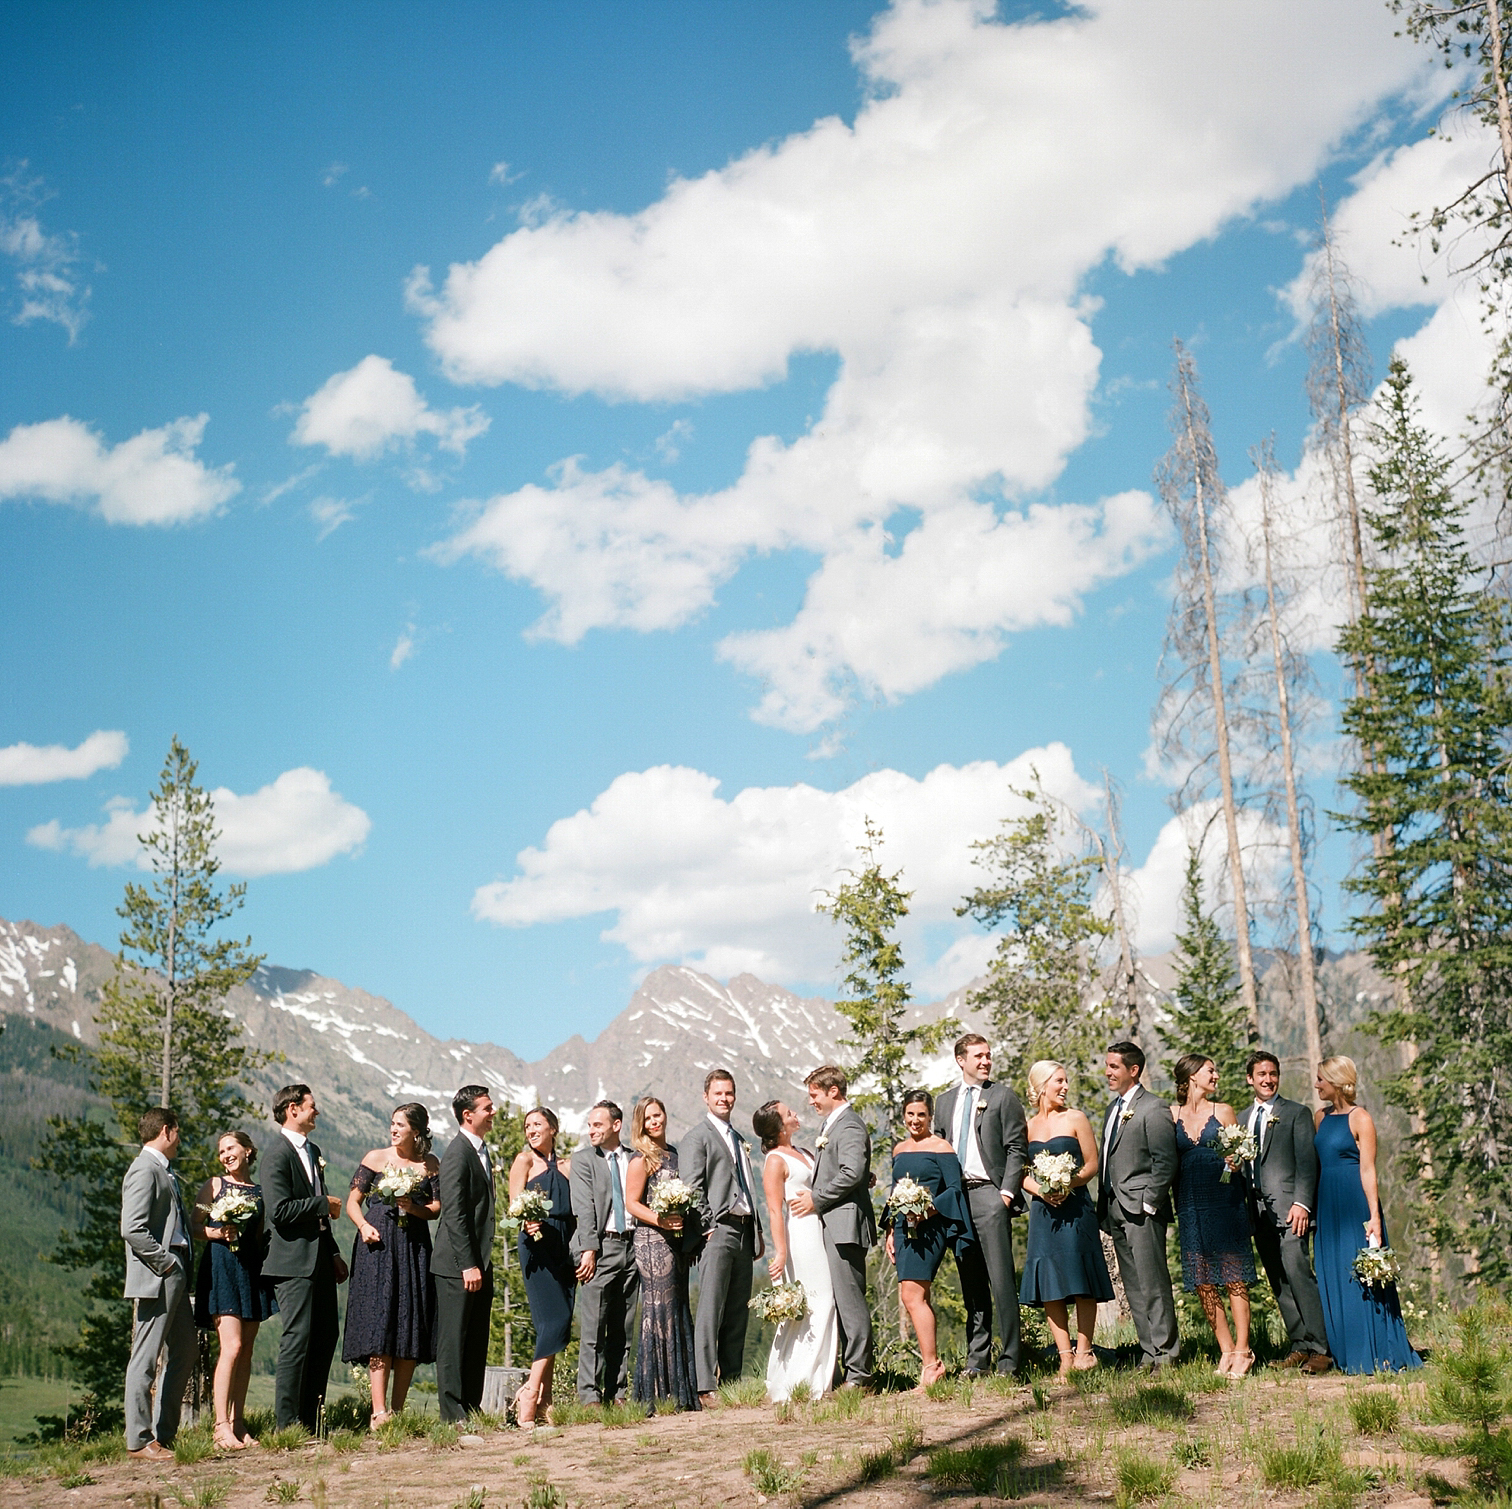 Vail Colorado Wedding, Colorado Wedding Photographer, Film Photographer, Mountain Wedding, Colorado Destination Wedding Photographers, Best Photographers In Colorado, Film Photography, Denver Wedding Photographers, Piney River Ranch, Wedding Party In Front Of Mountains